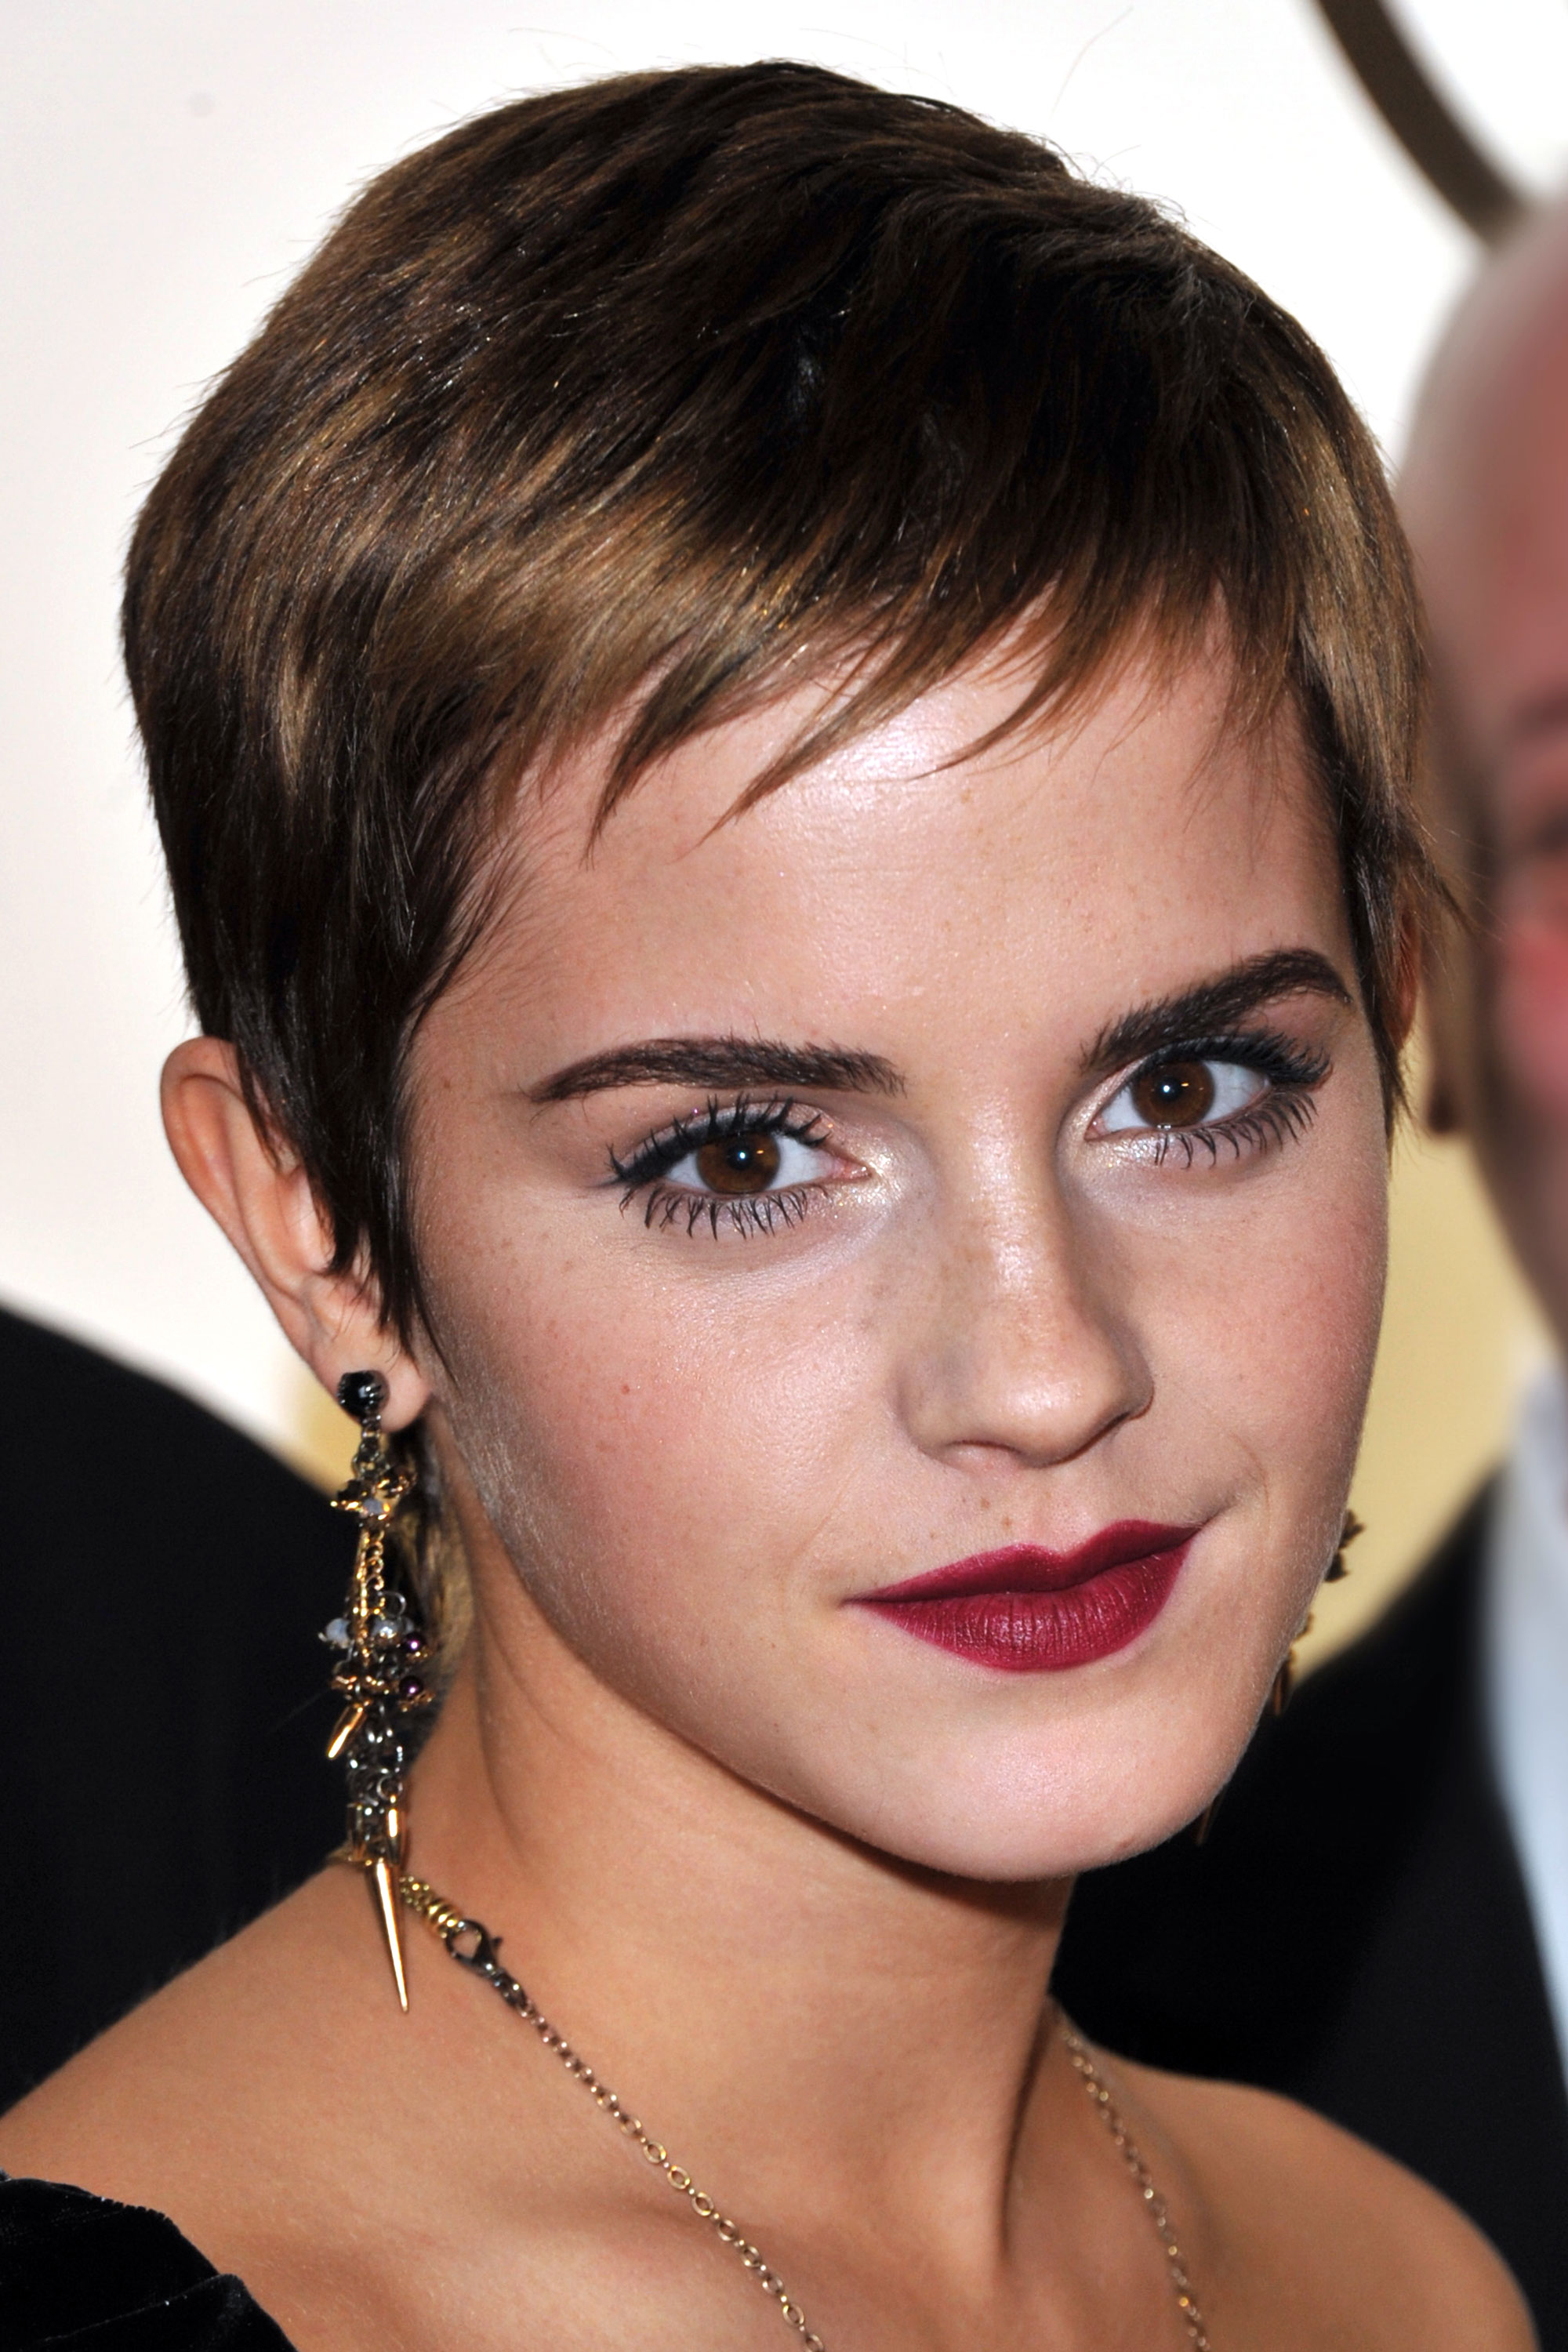 Summer Pixie Hairstyles You Will Want To Have